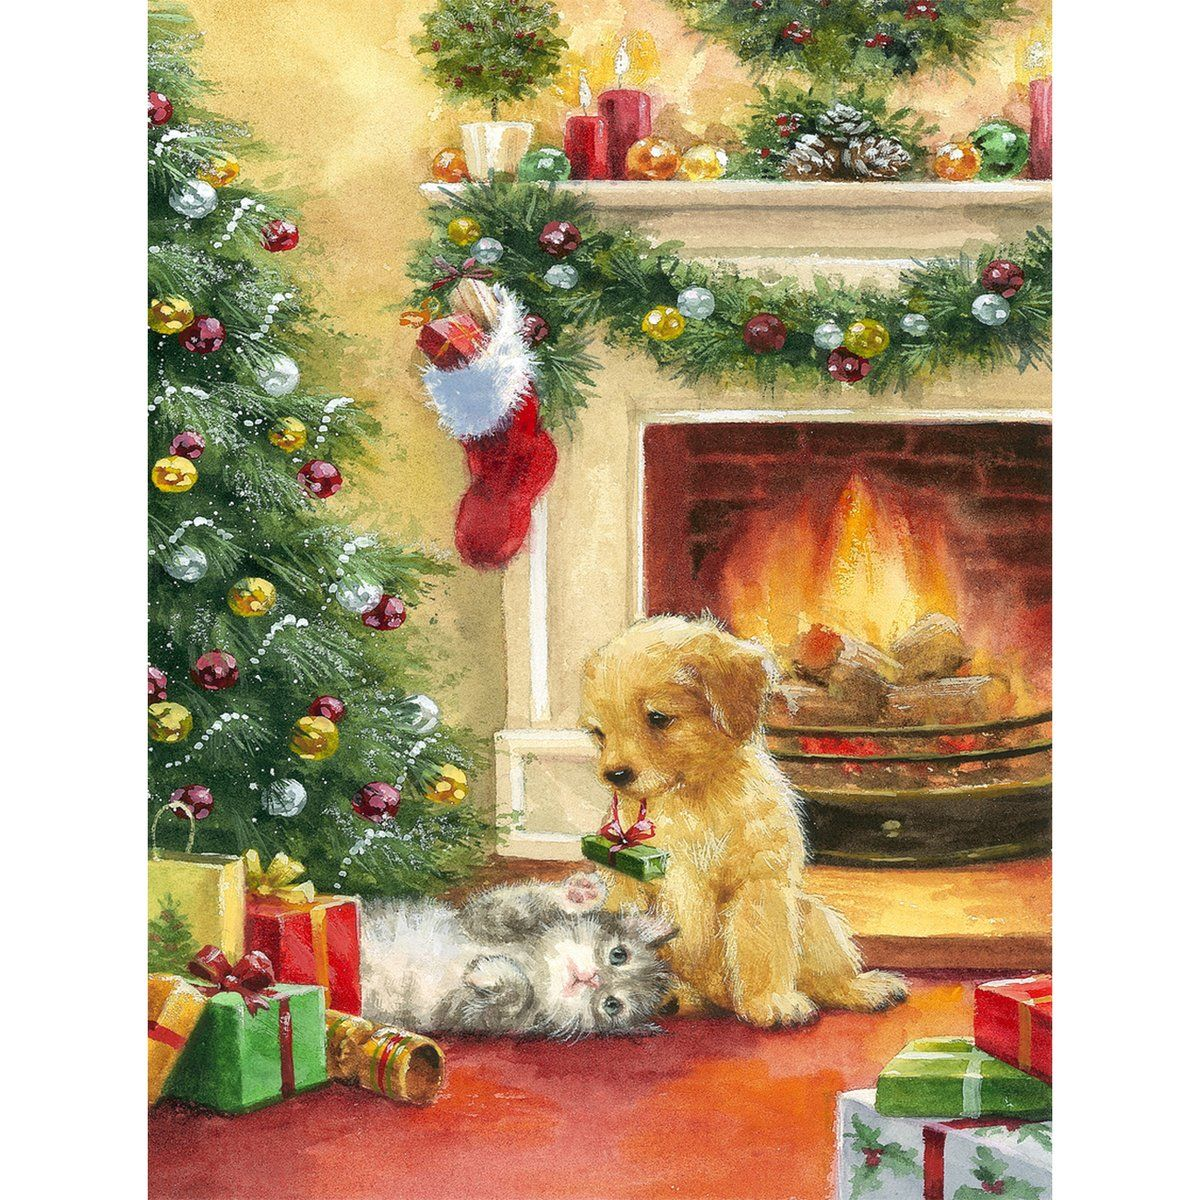 5d Diamond Painting Christmas Tree Fireplace Cat And Dog Paint With Diamonds Art Crystal Craft Decor In 2020 Christmas Tree Painting Christmas Paintings Christmas Artwork